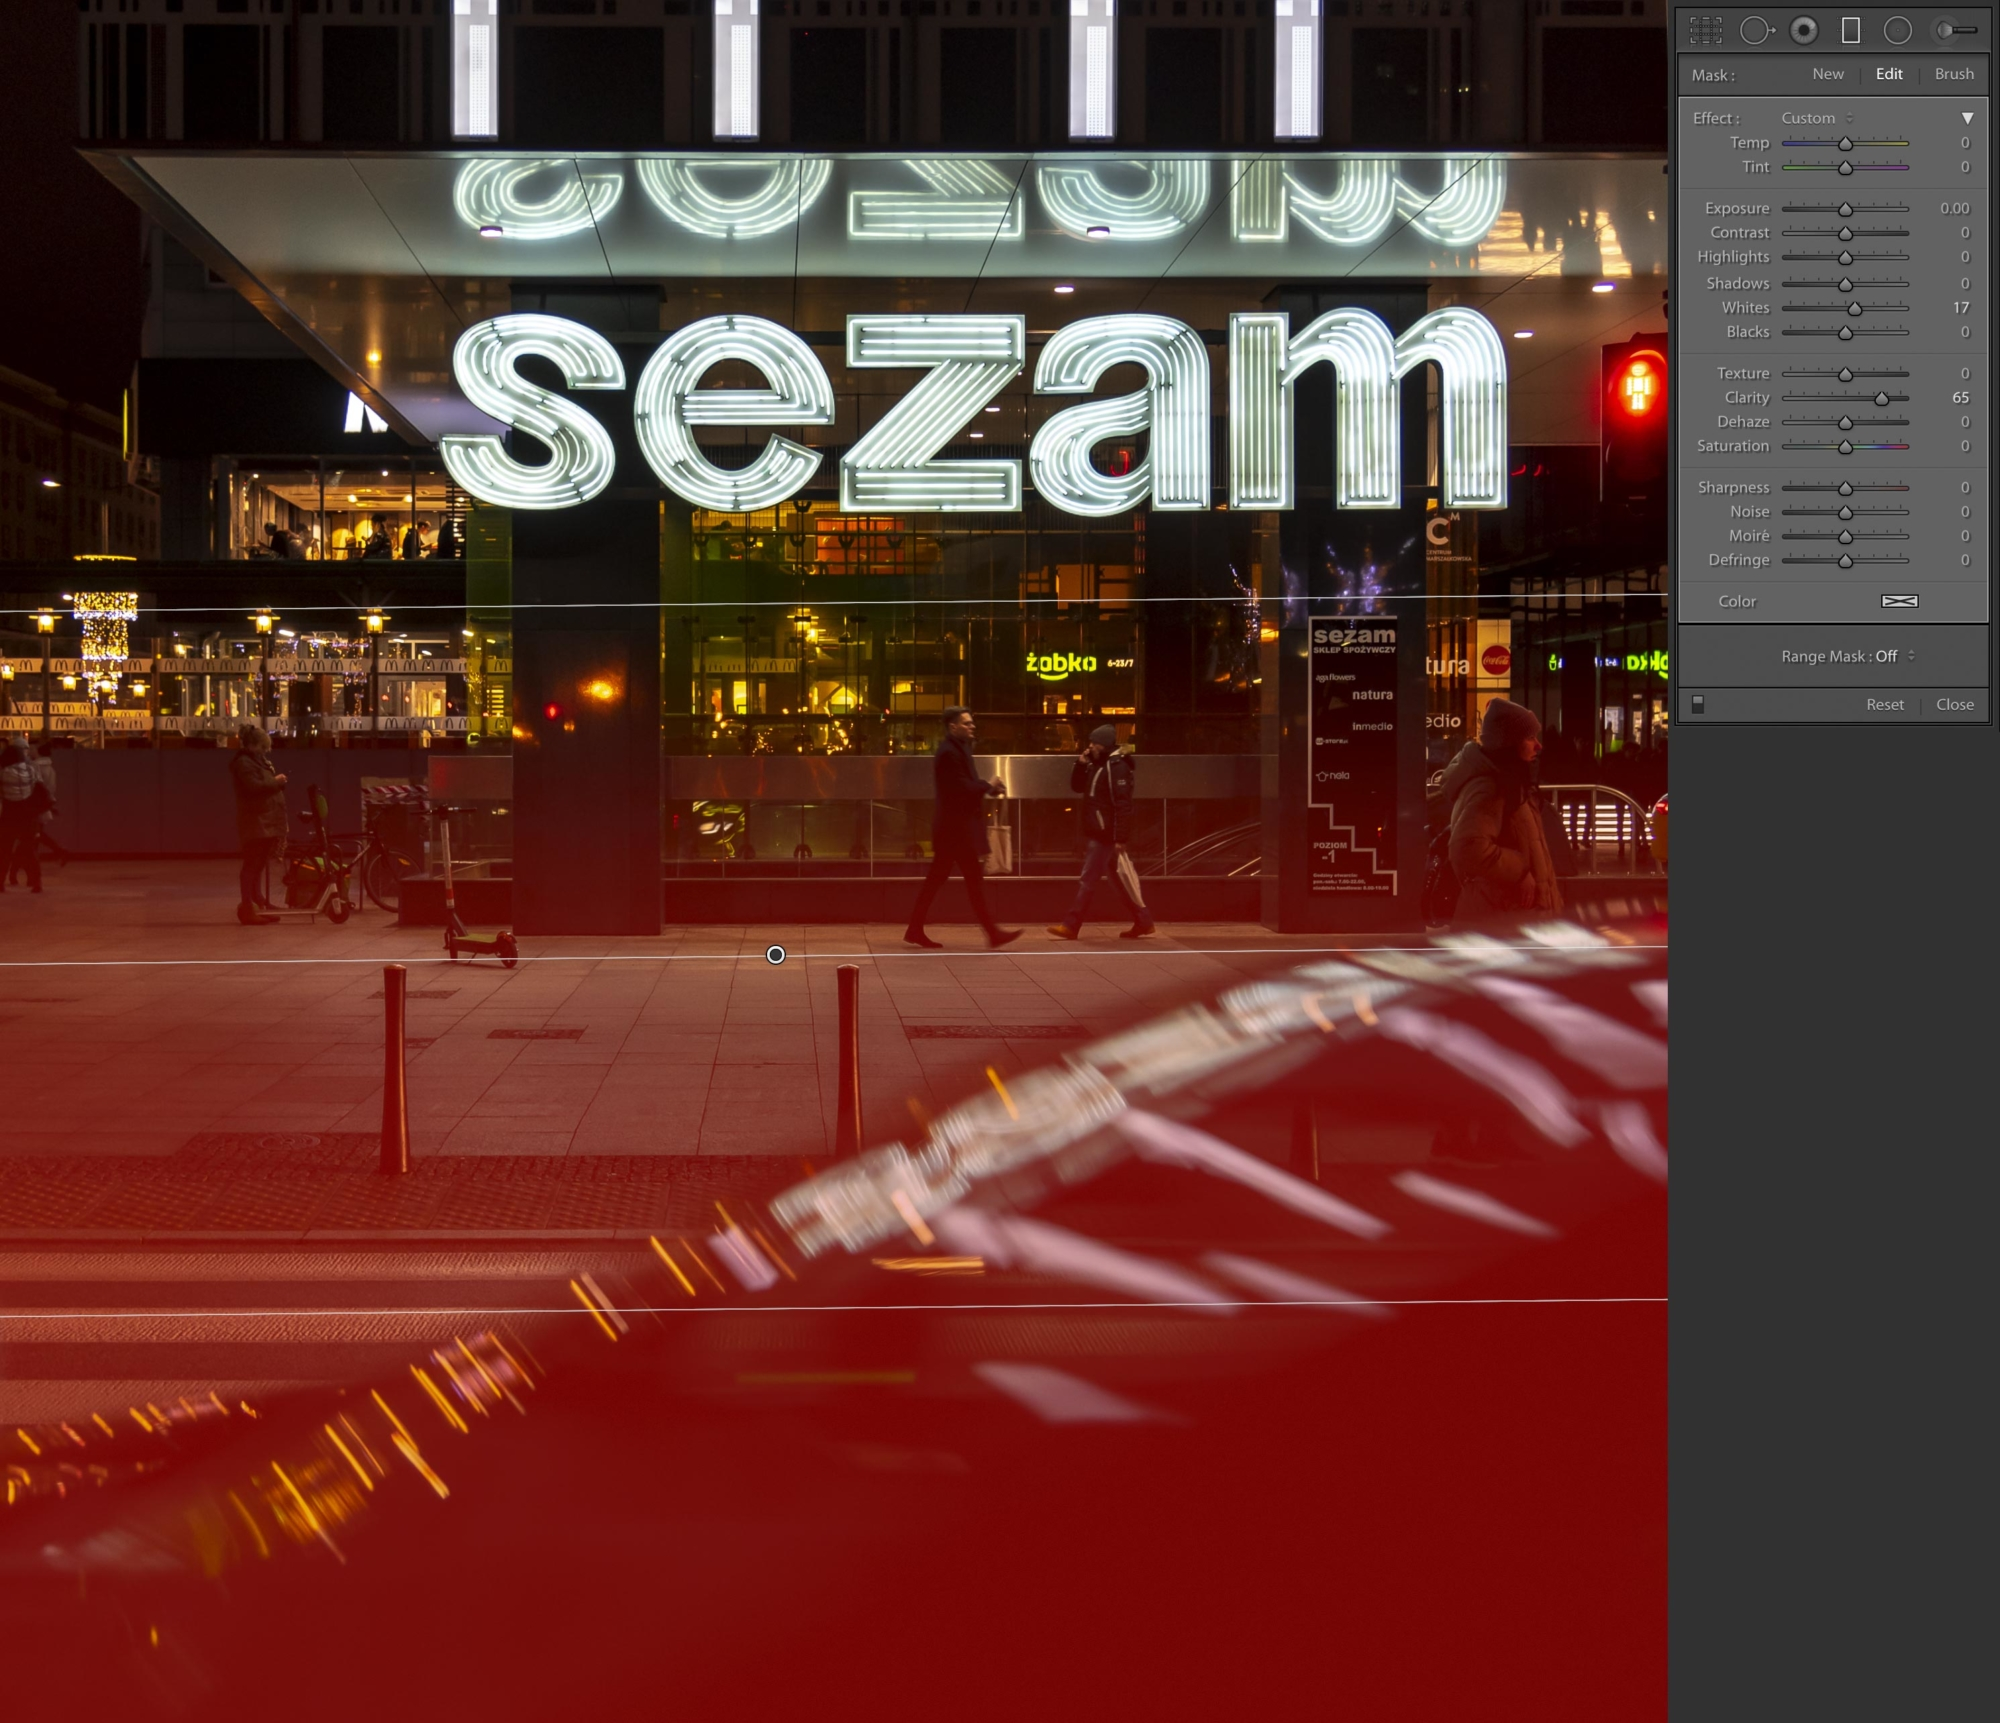 Instagram ready images -Sezam neon sign and car - with gradient filter on the car